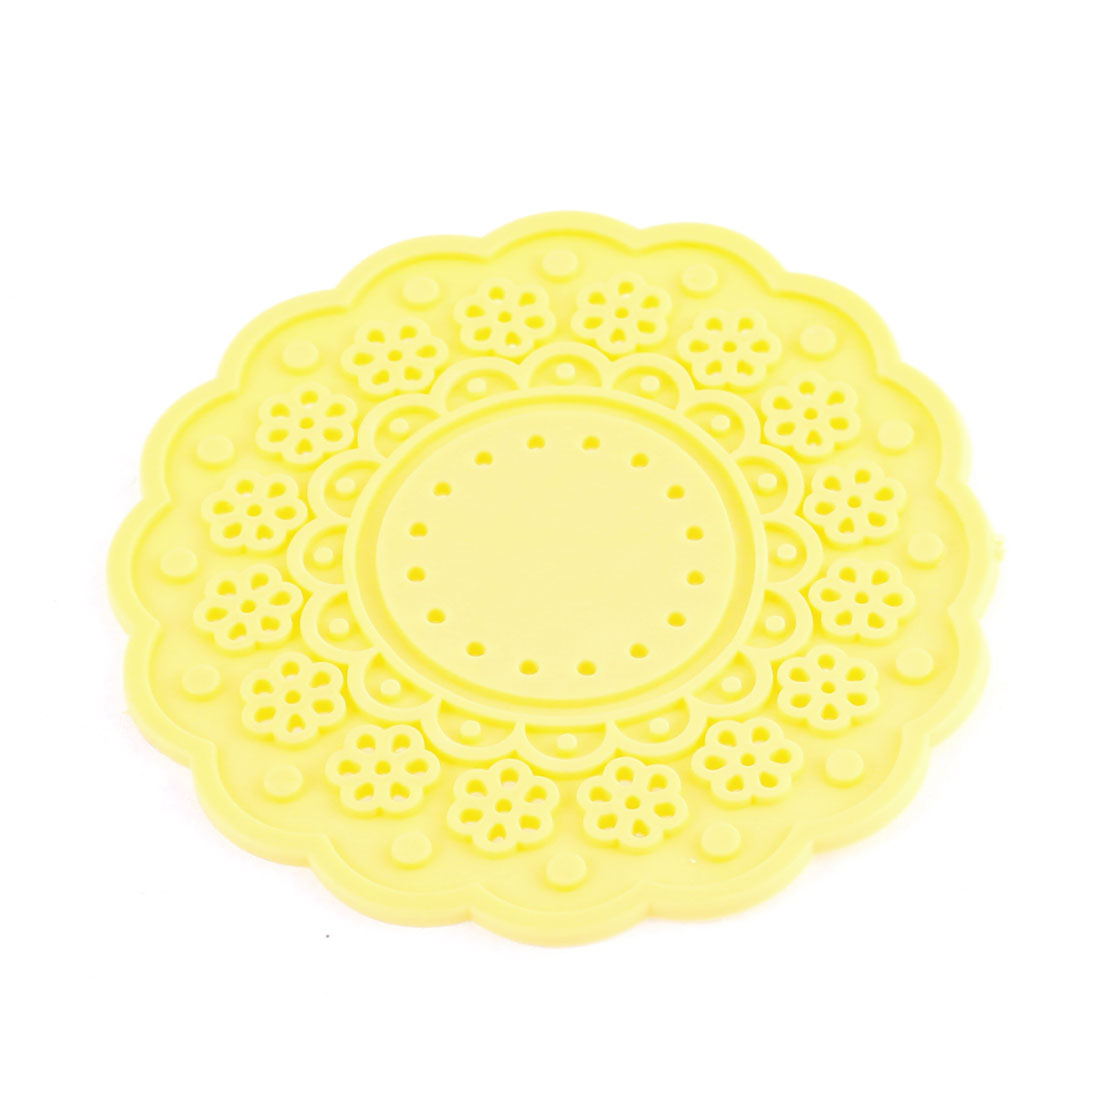 Yellow Silicone Lace Doily Coasters Drink Tea Cup Mat 10cm Dia